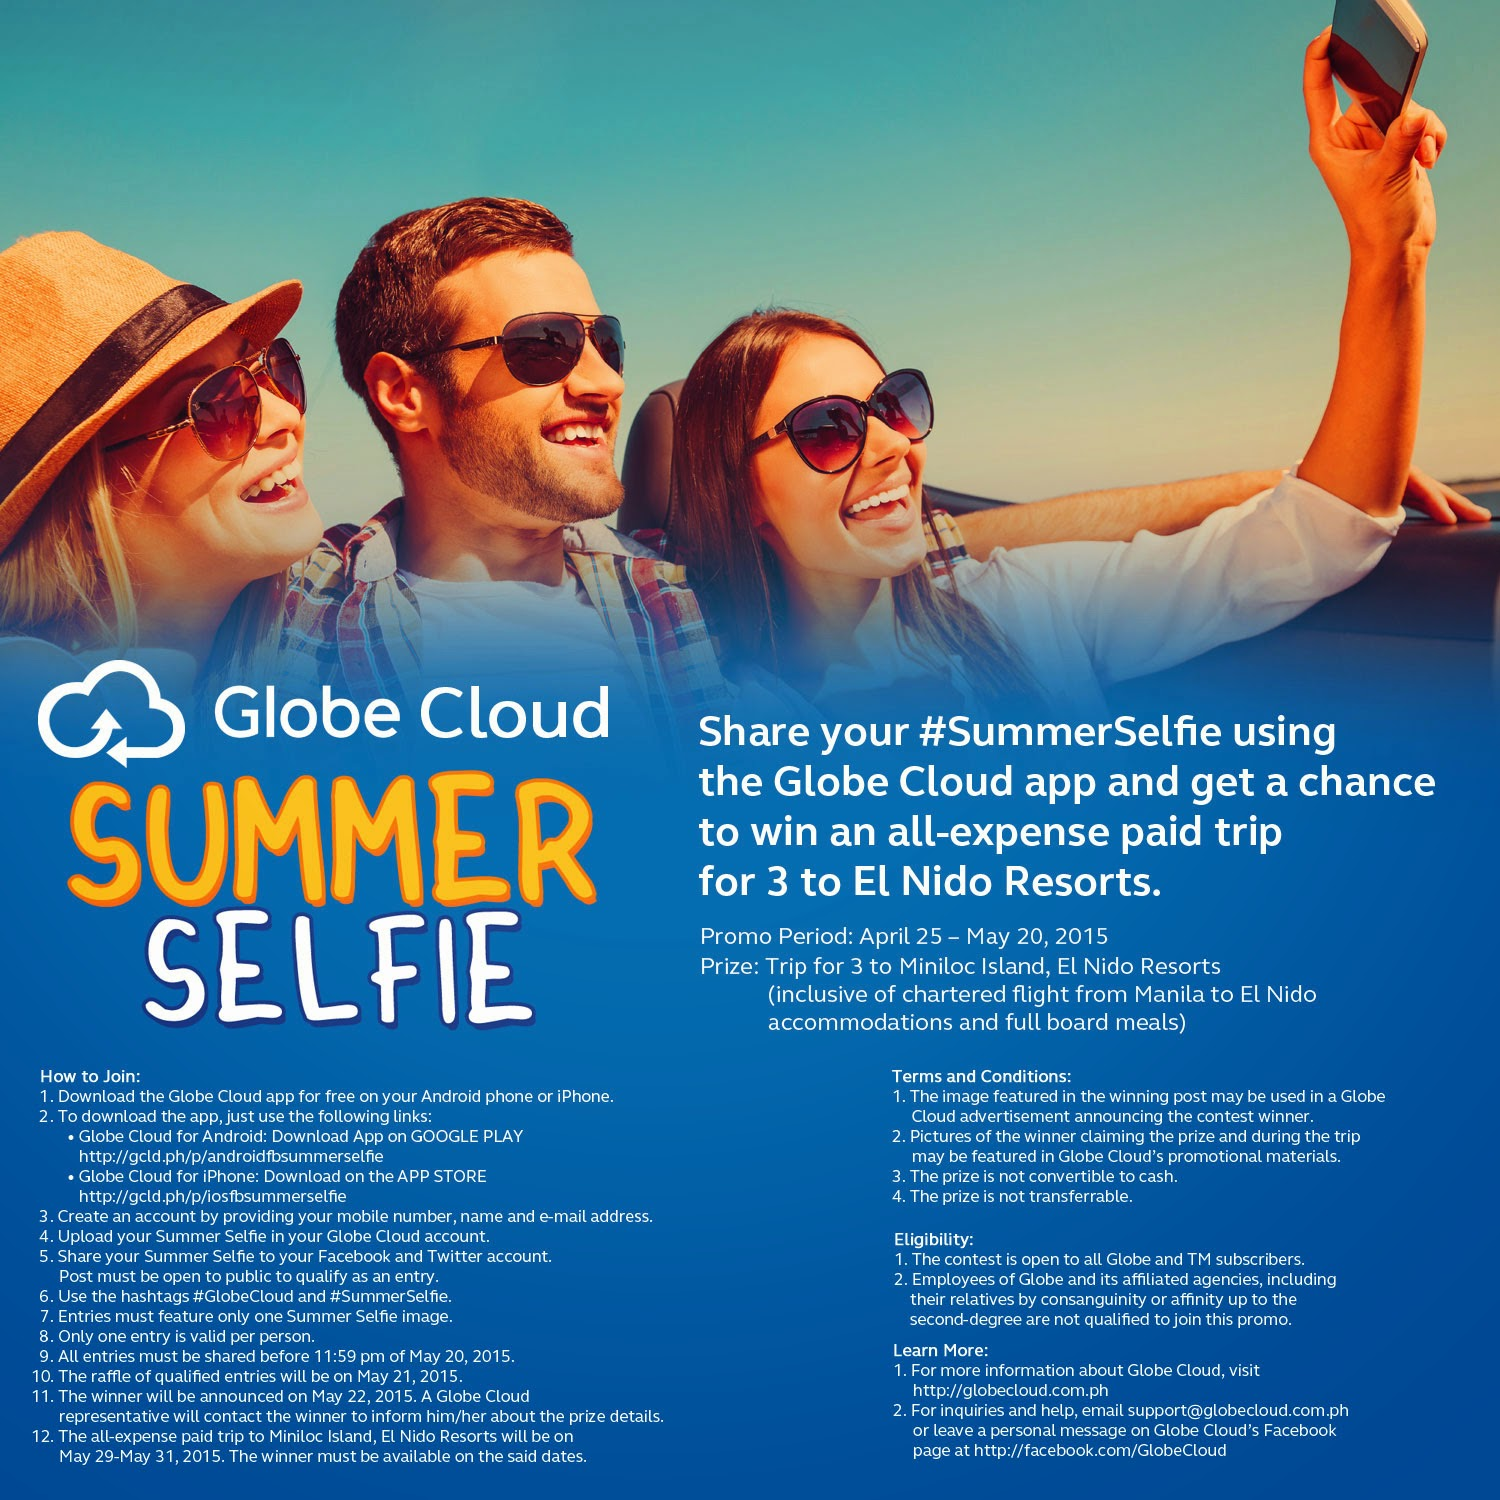 Globe Cloud Summer Selfie